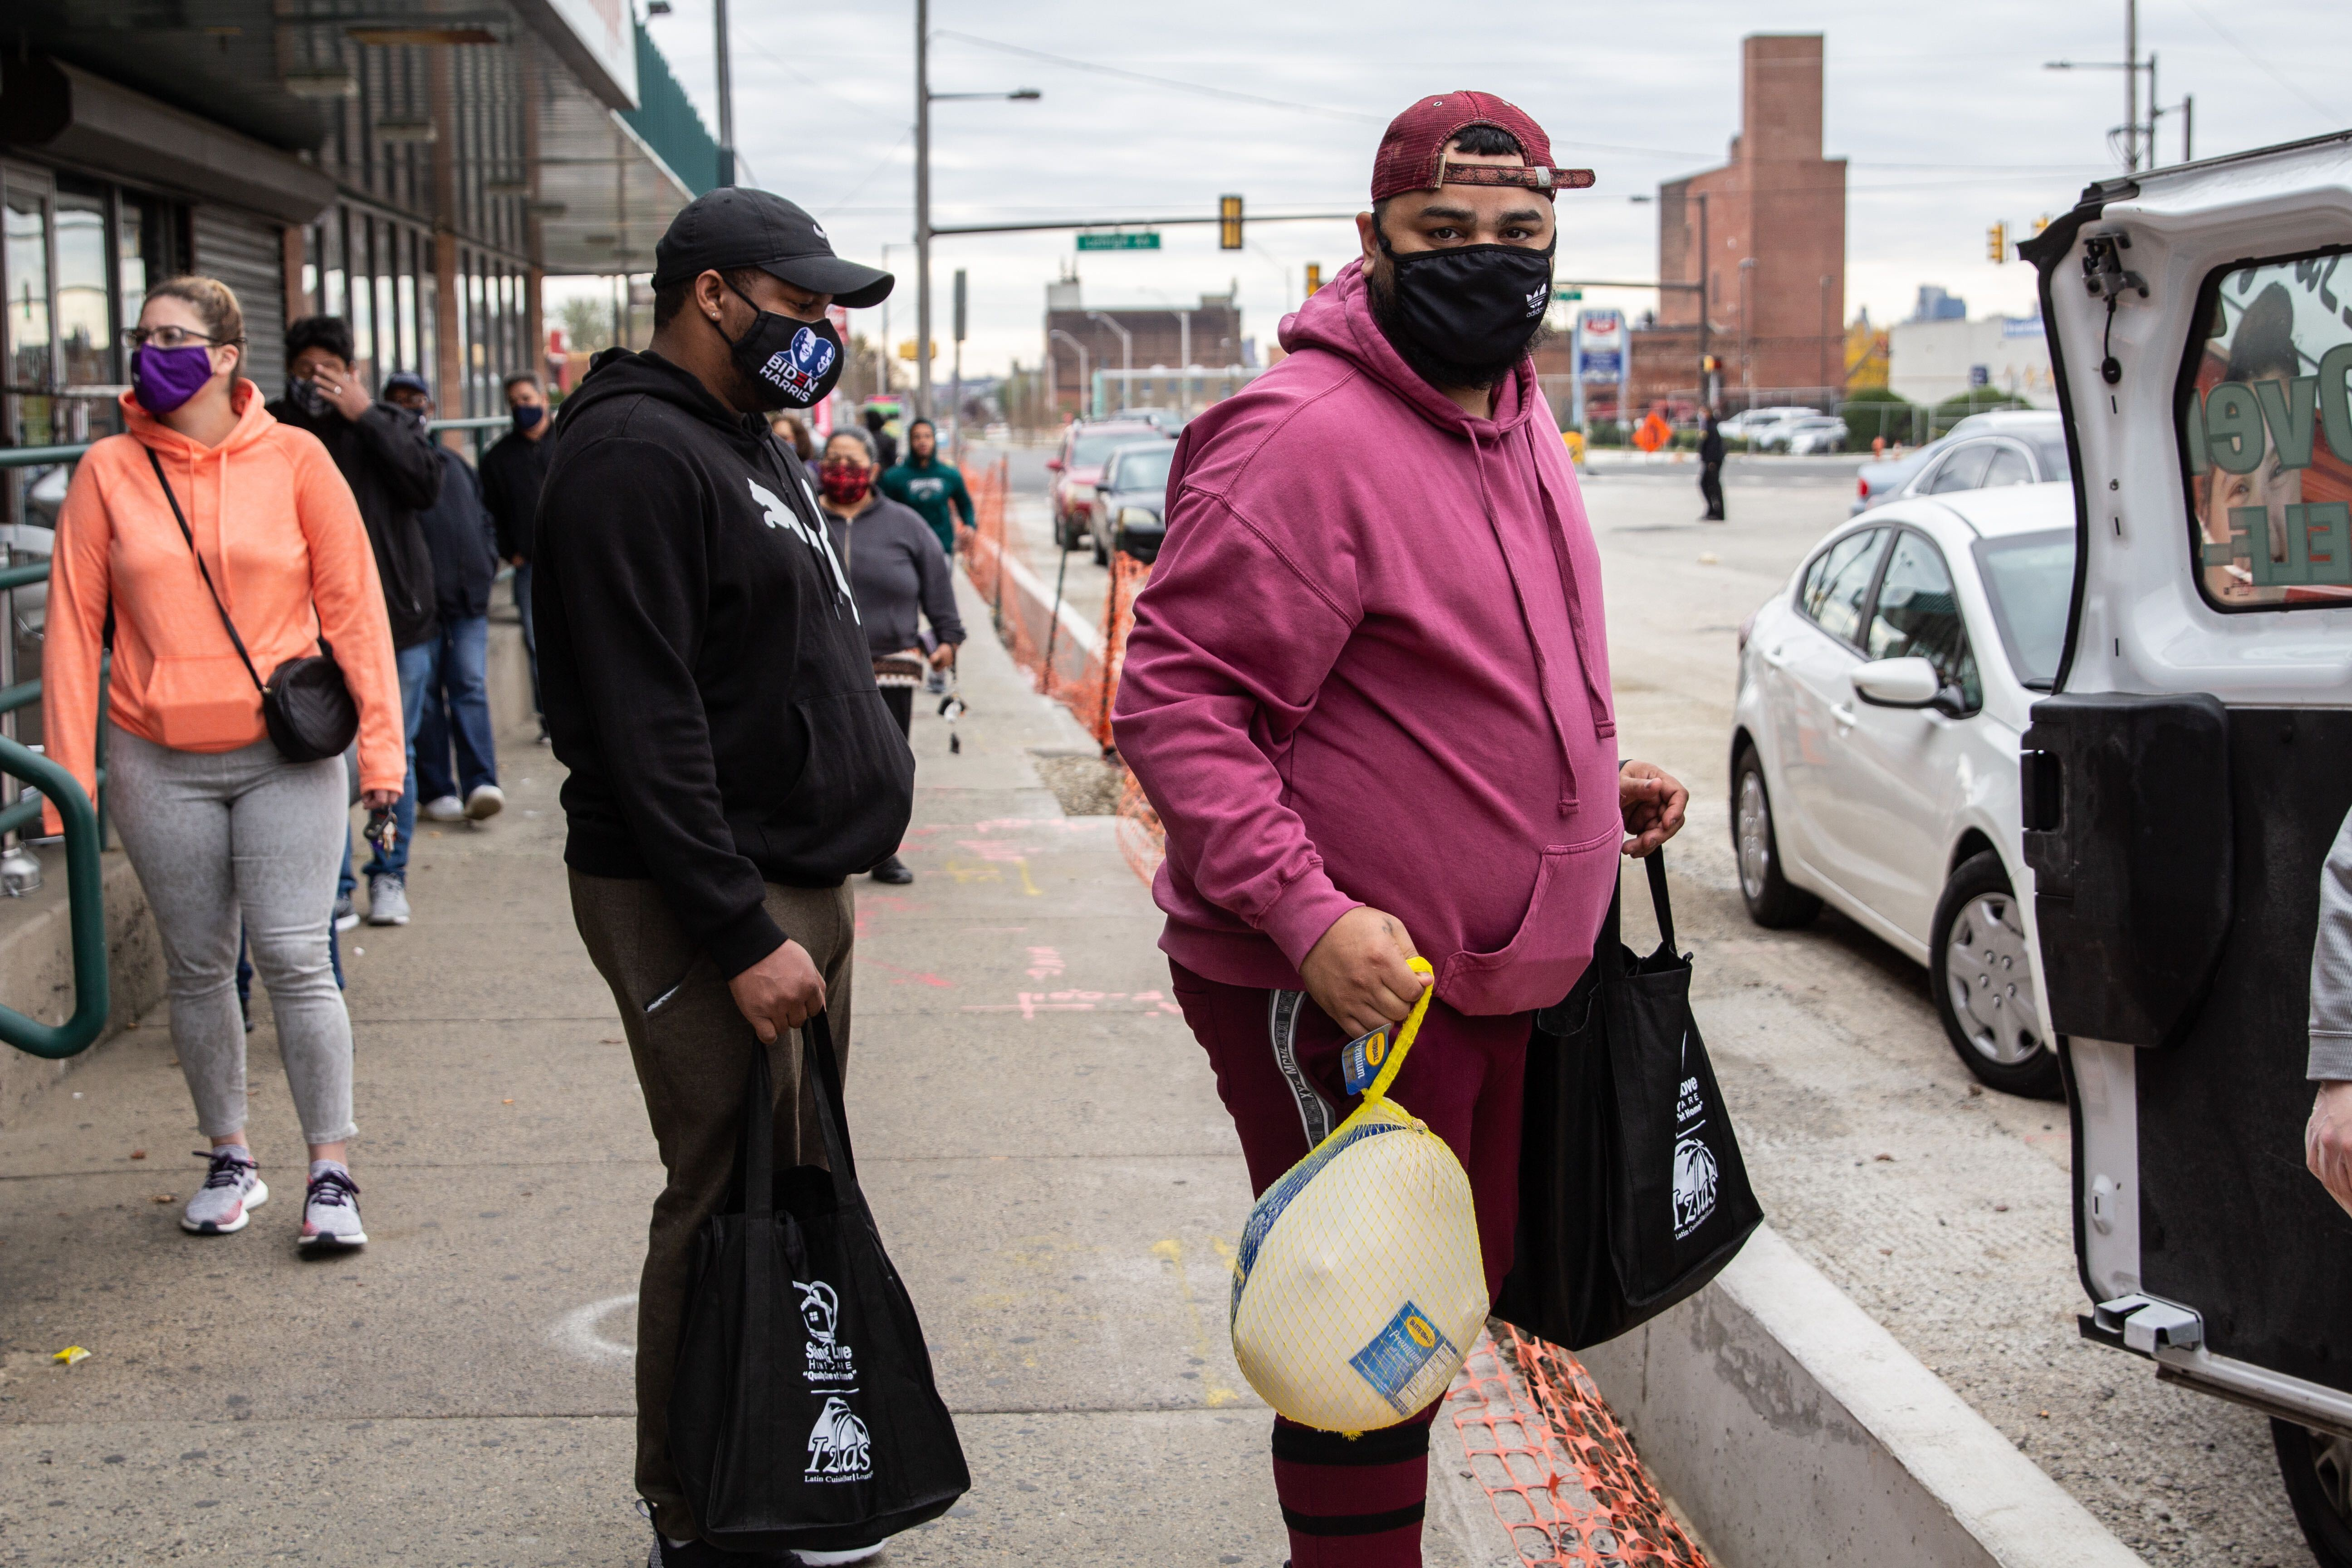 Kensington resident Alex Pagan waits in line for a free Thanksgiving turkey for his family.